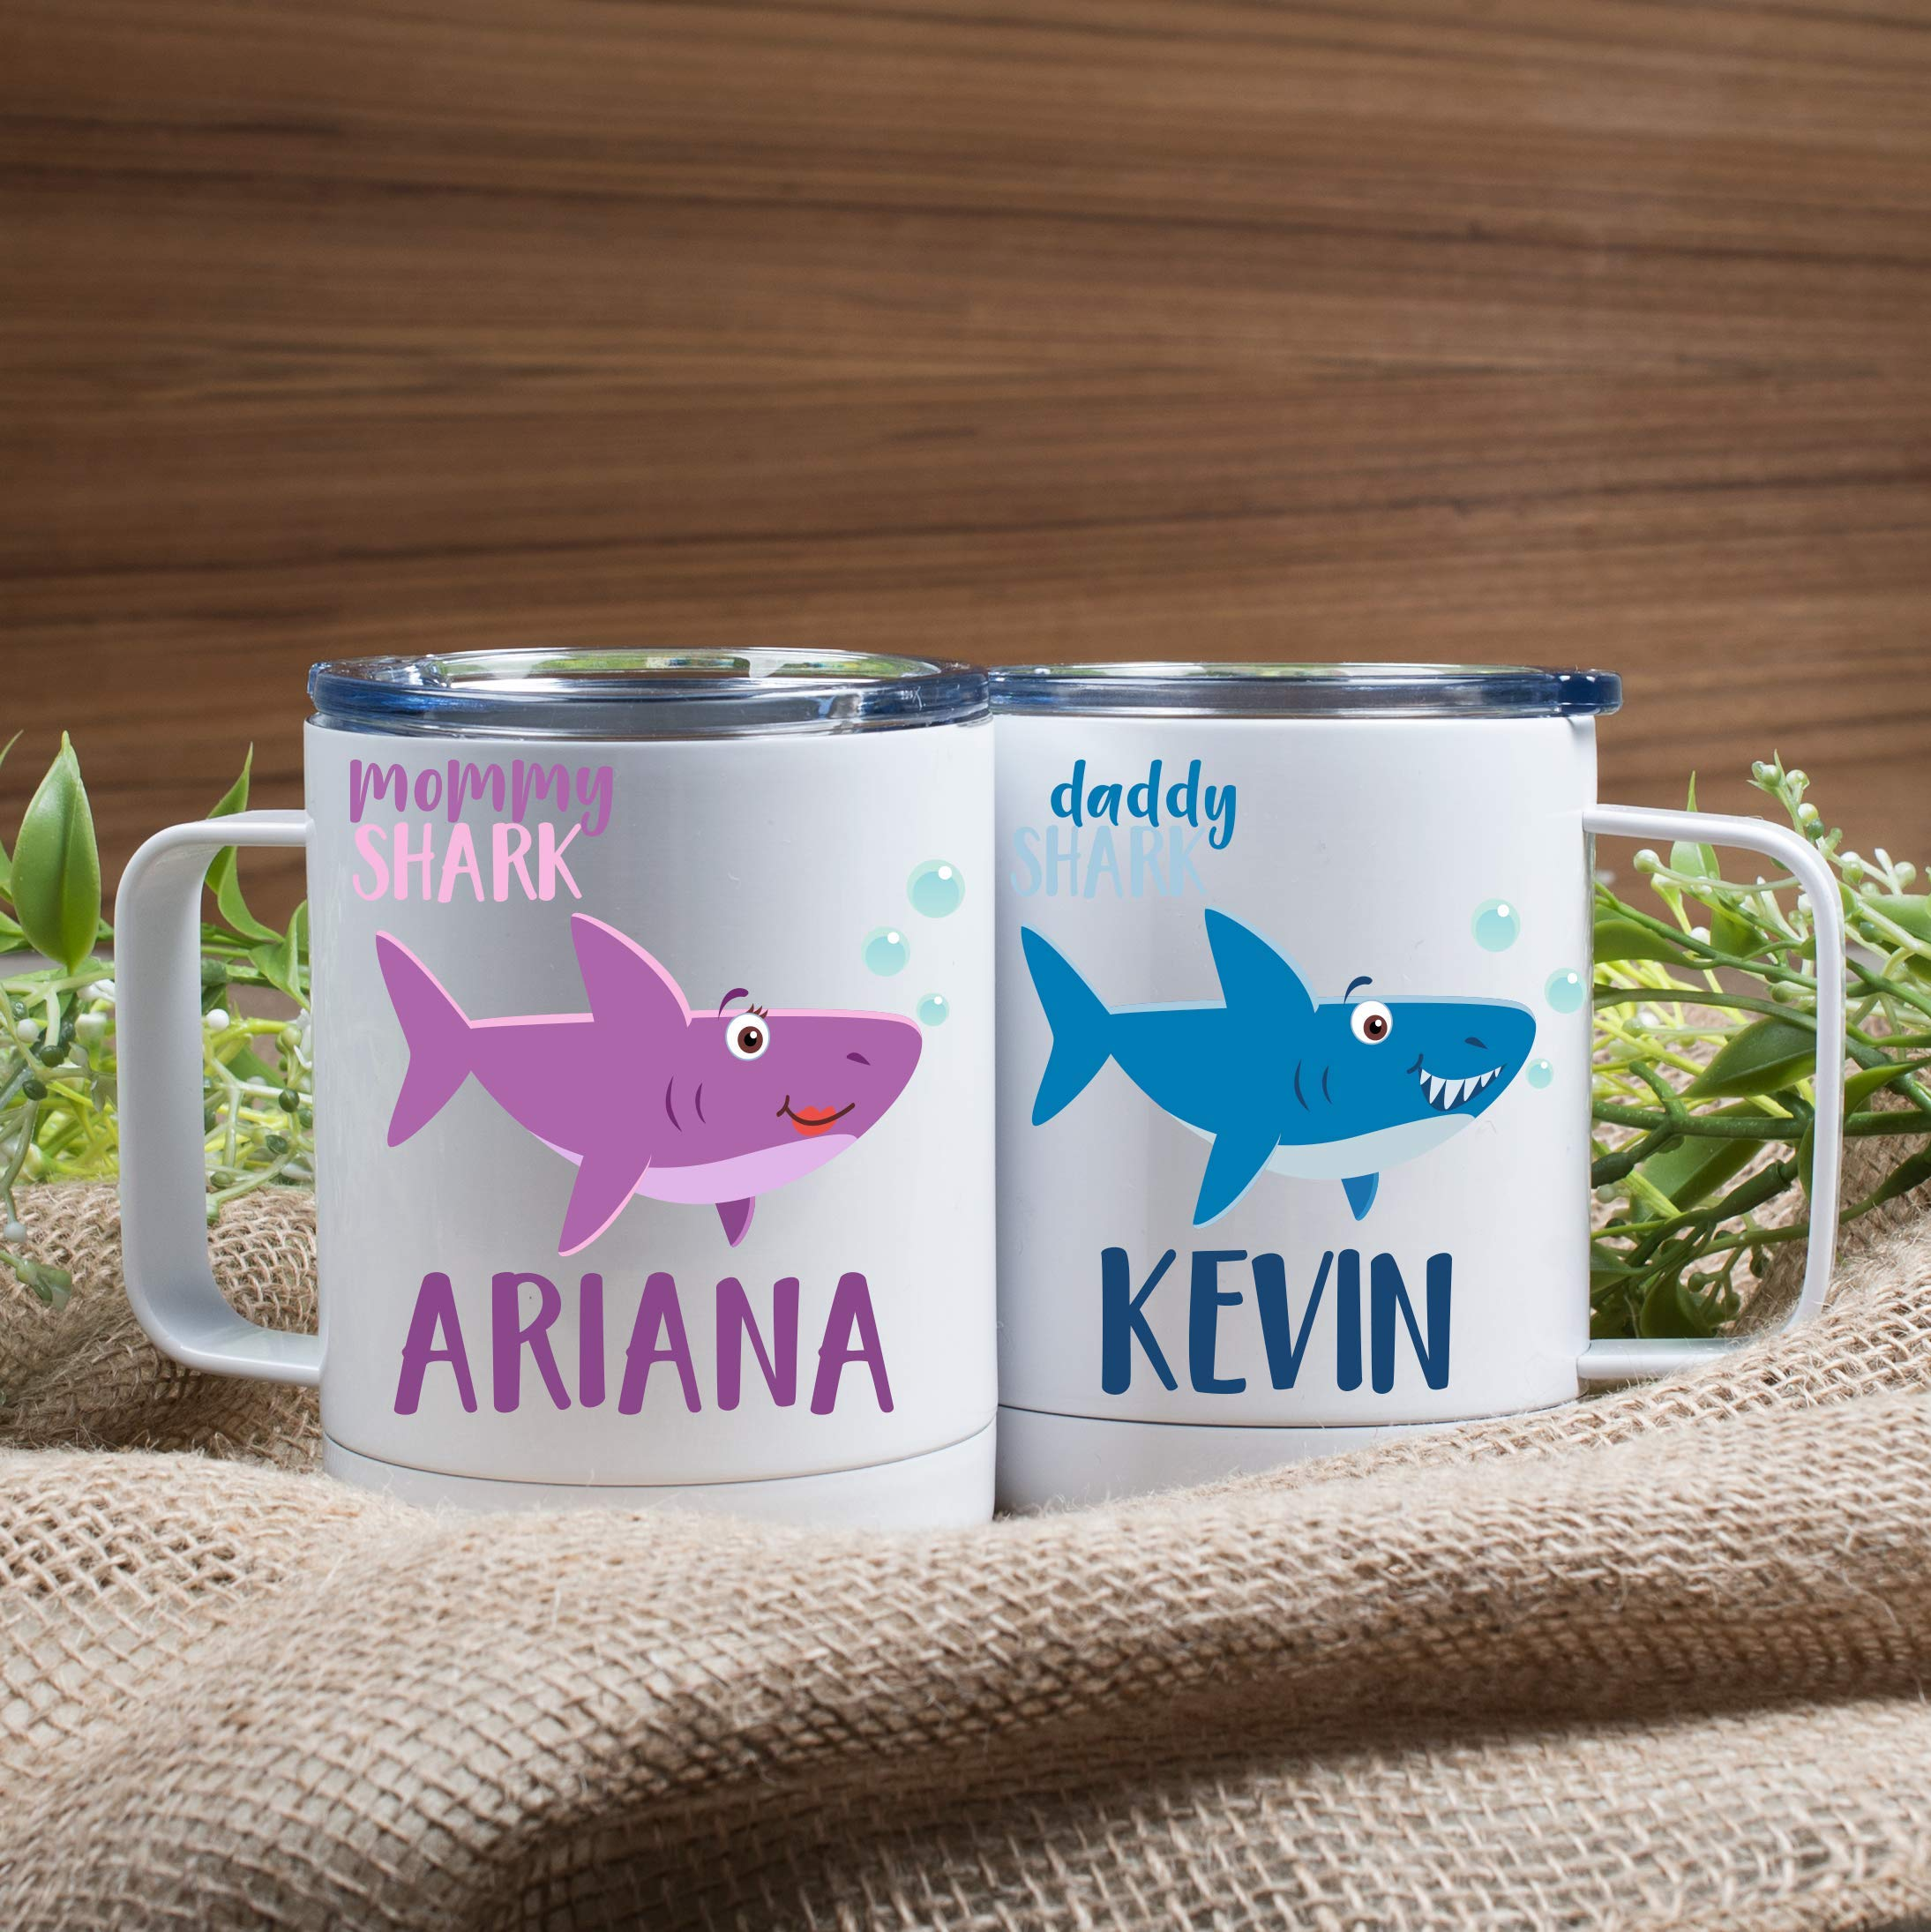 Personalized Gifts Shark Family Coffee Mug - 12oz Stainless Steel Tumbler Coffee Mug with Lid -Birthday Gifts, Christmas Gifts, Mother's Day - Baby, Boy, Girl, Mommy, Daddy, Grandma, Grandpa Sharks by USA Custom Gifts (Image #4)